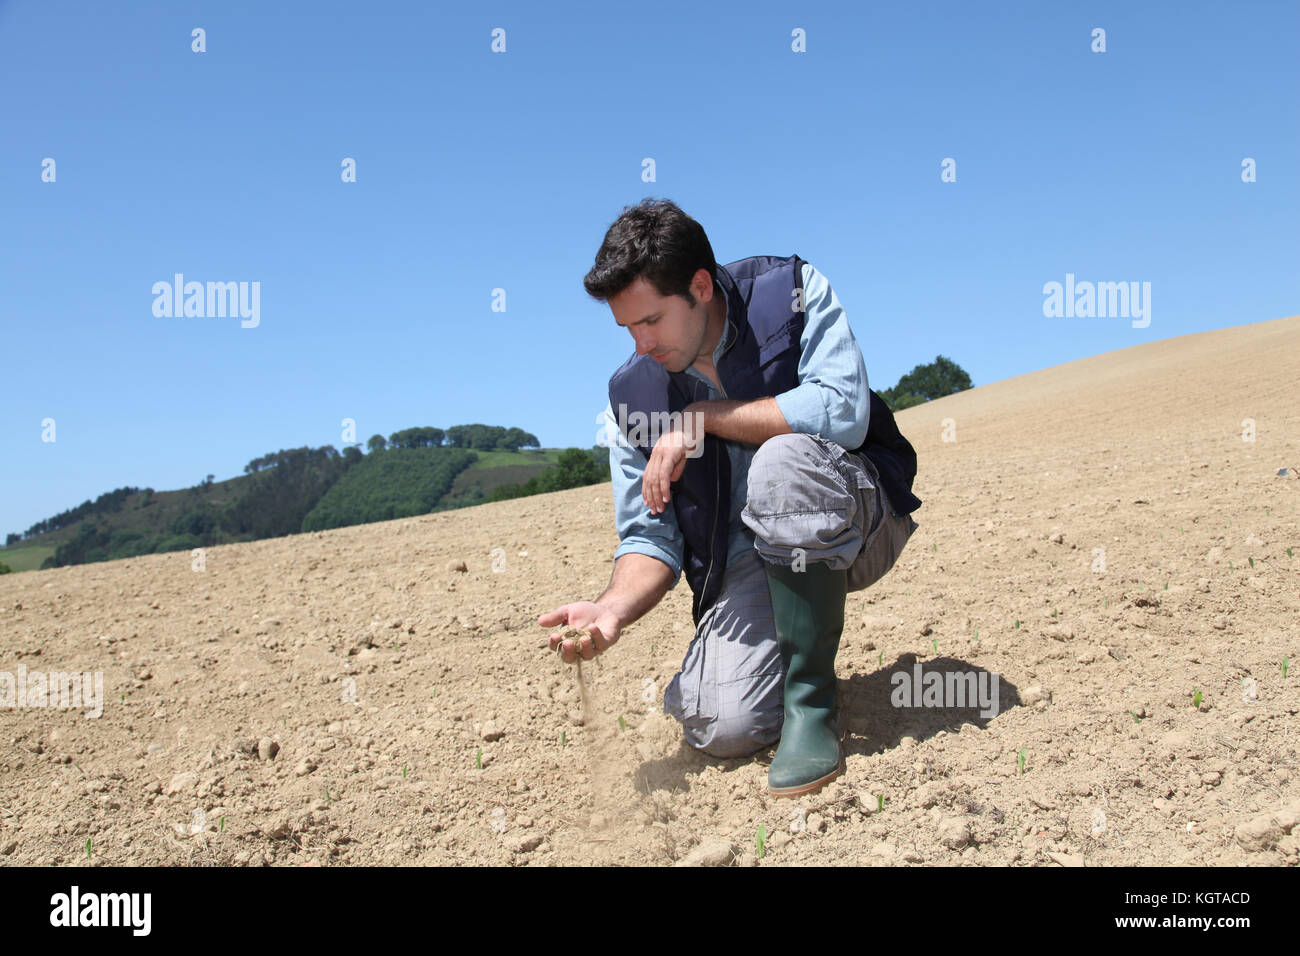 Environmental issues and lack of water - Stock Image